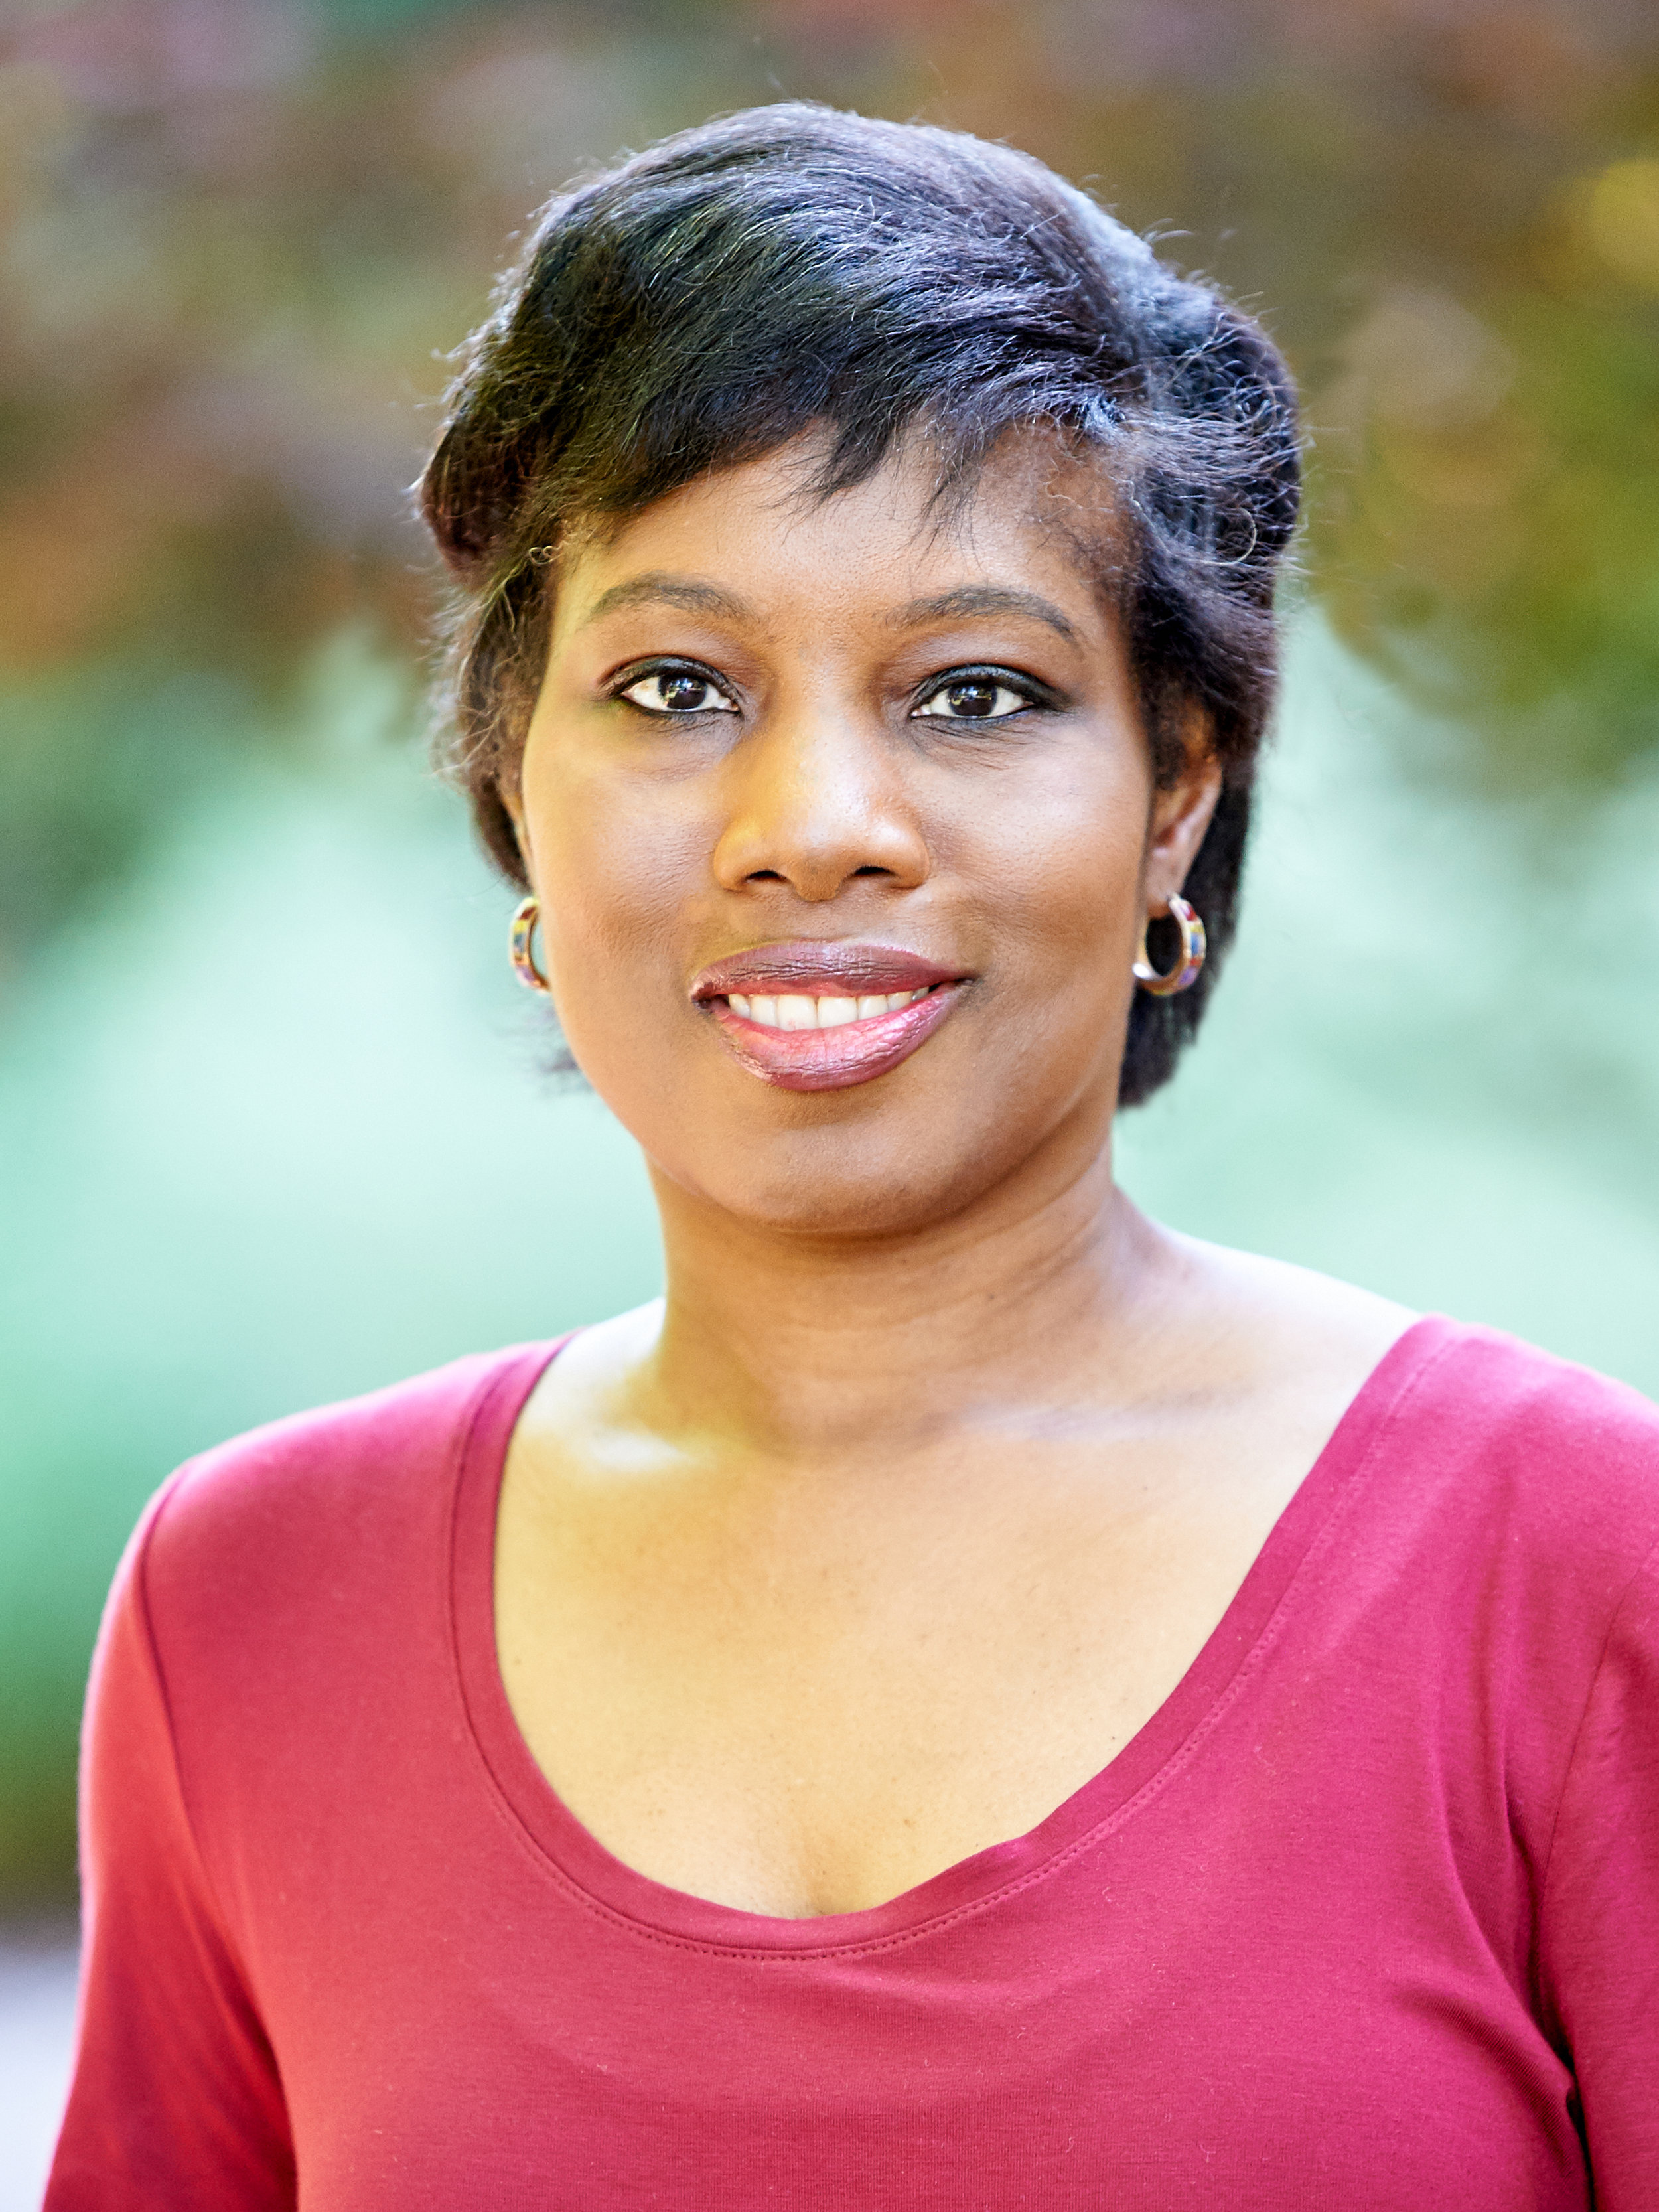 Joy Butler will host the next AFJ webinar, Food Writers in the Legal Jungle, Wednesday, October 25th at 1:30 p.m. EST. Email afj.amanda@gmail.com to join this presentation.